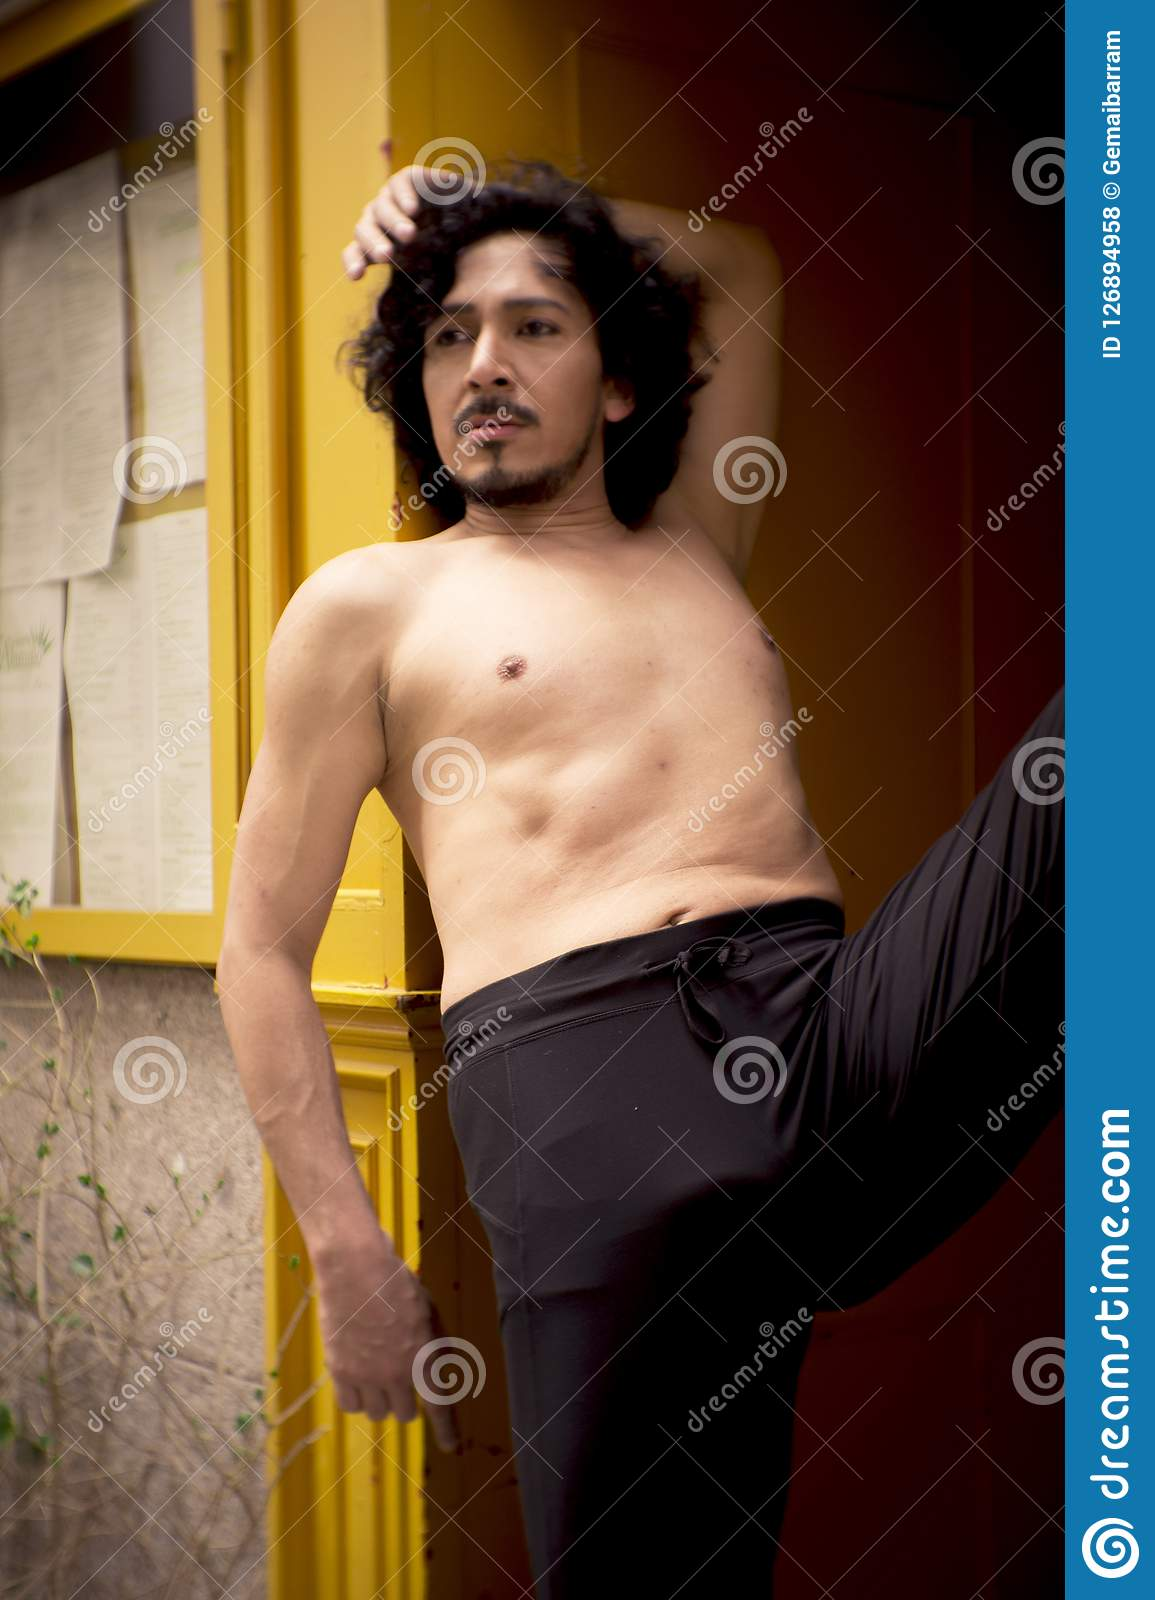 Latin male dancer posing with dancing figures